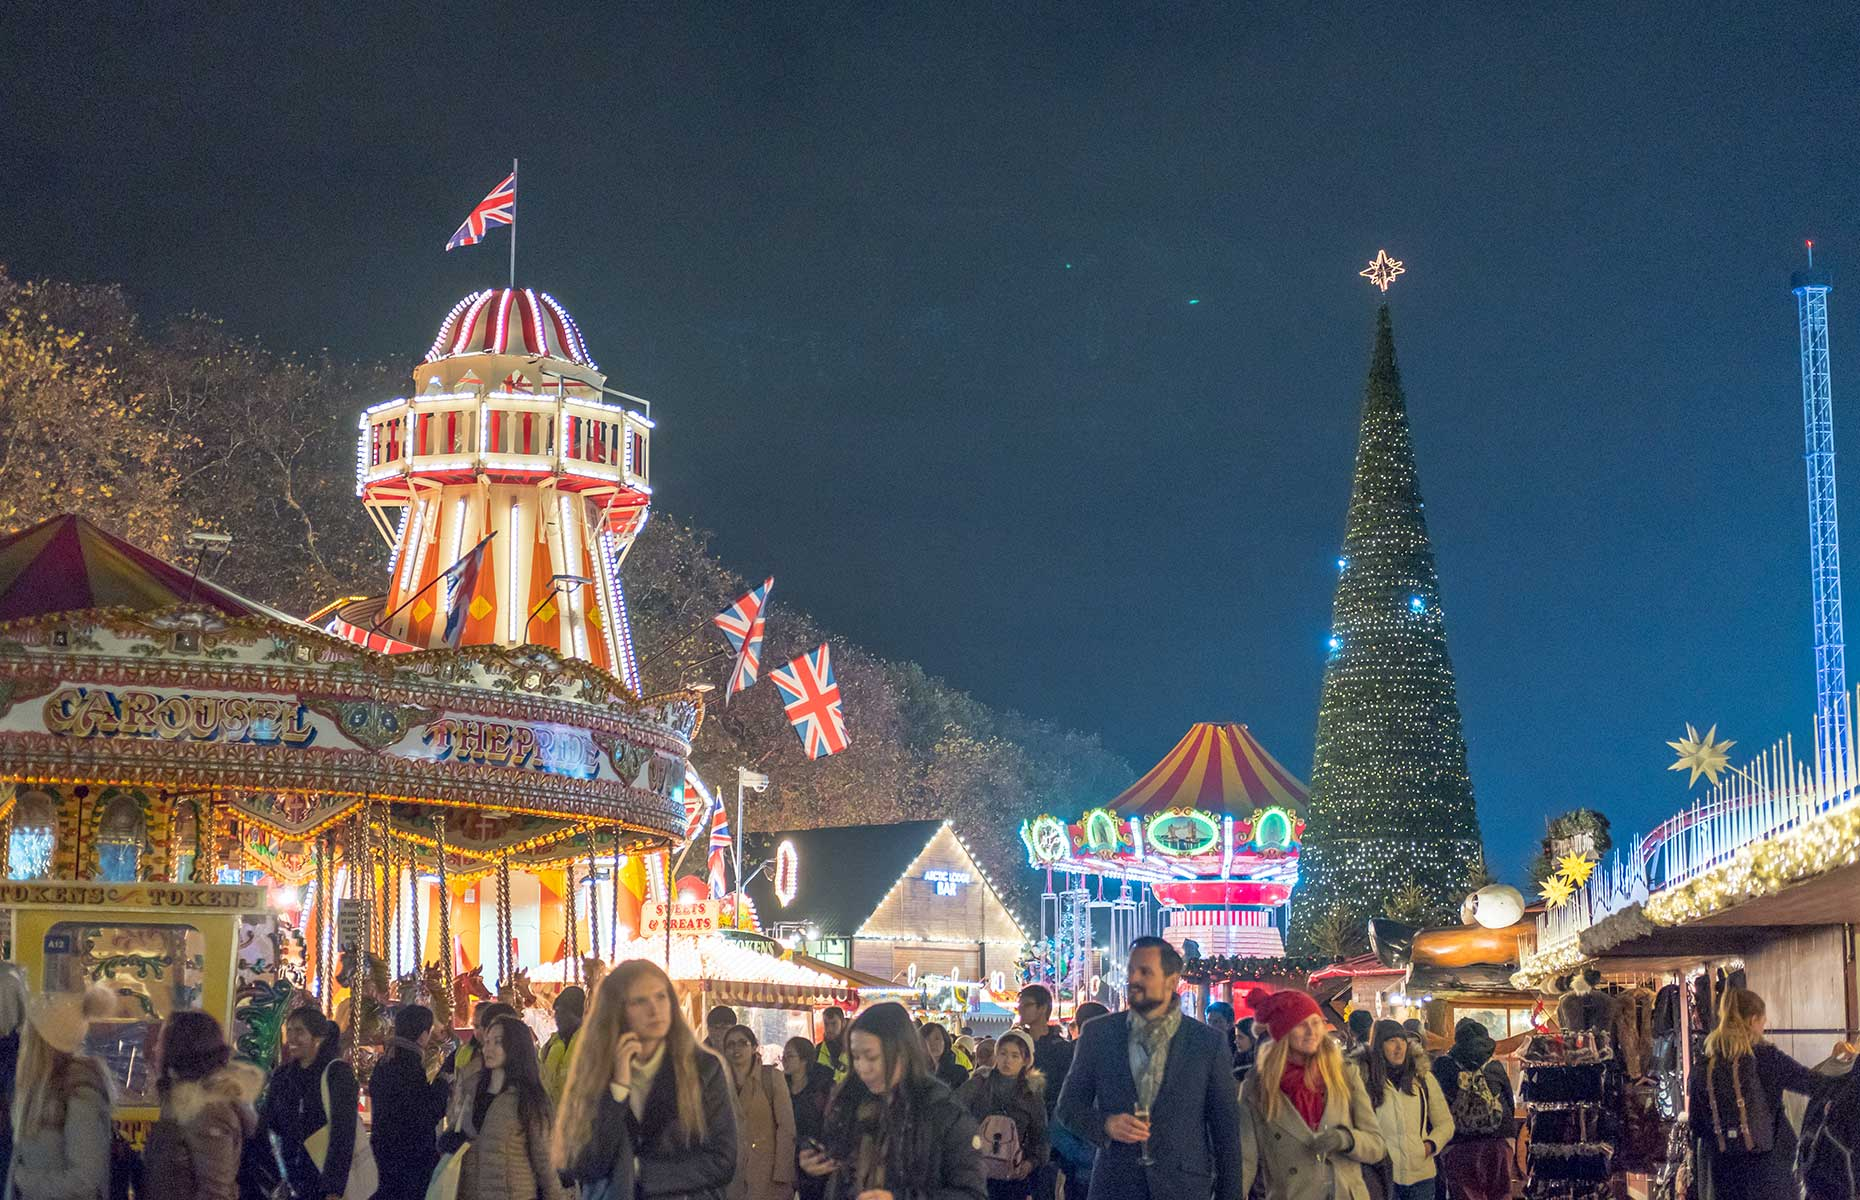 Winter Wonderland in Hyde Park is great during the day but even better when visited as evening falls